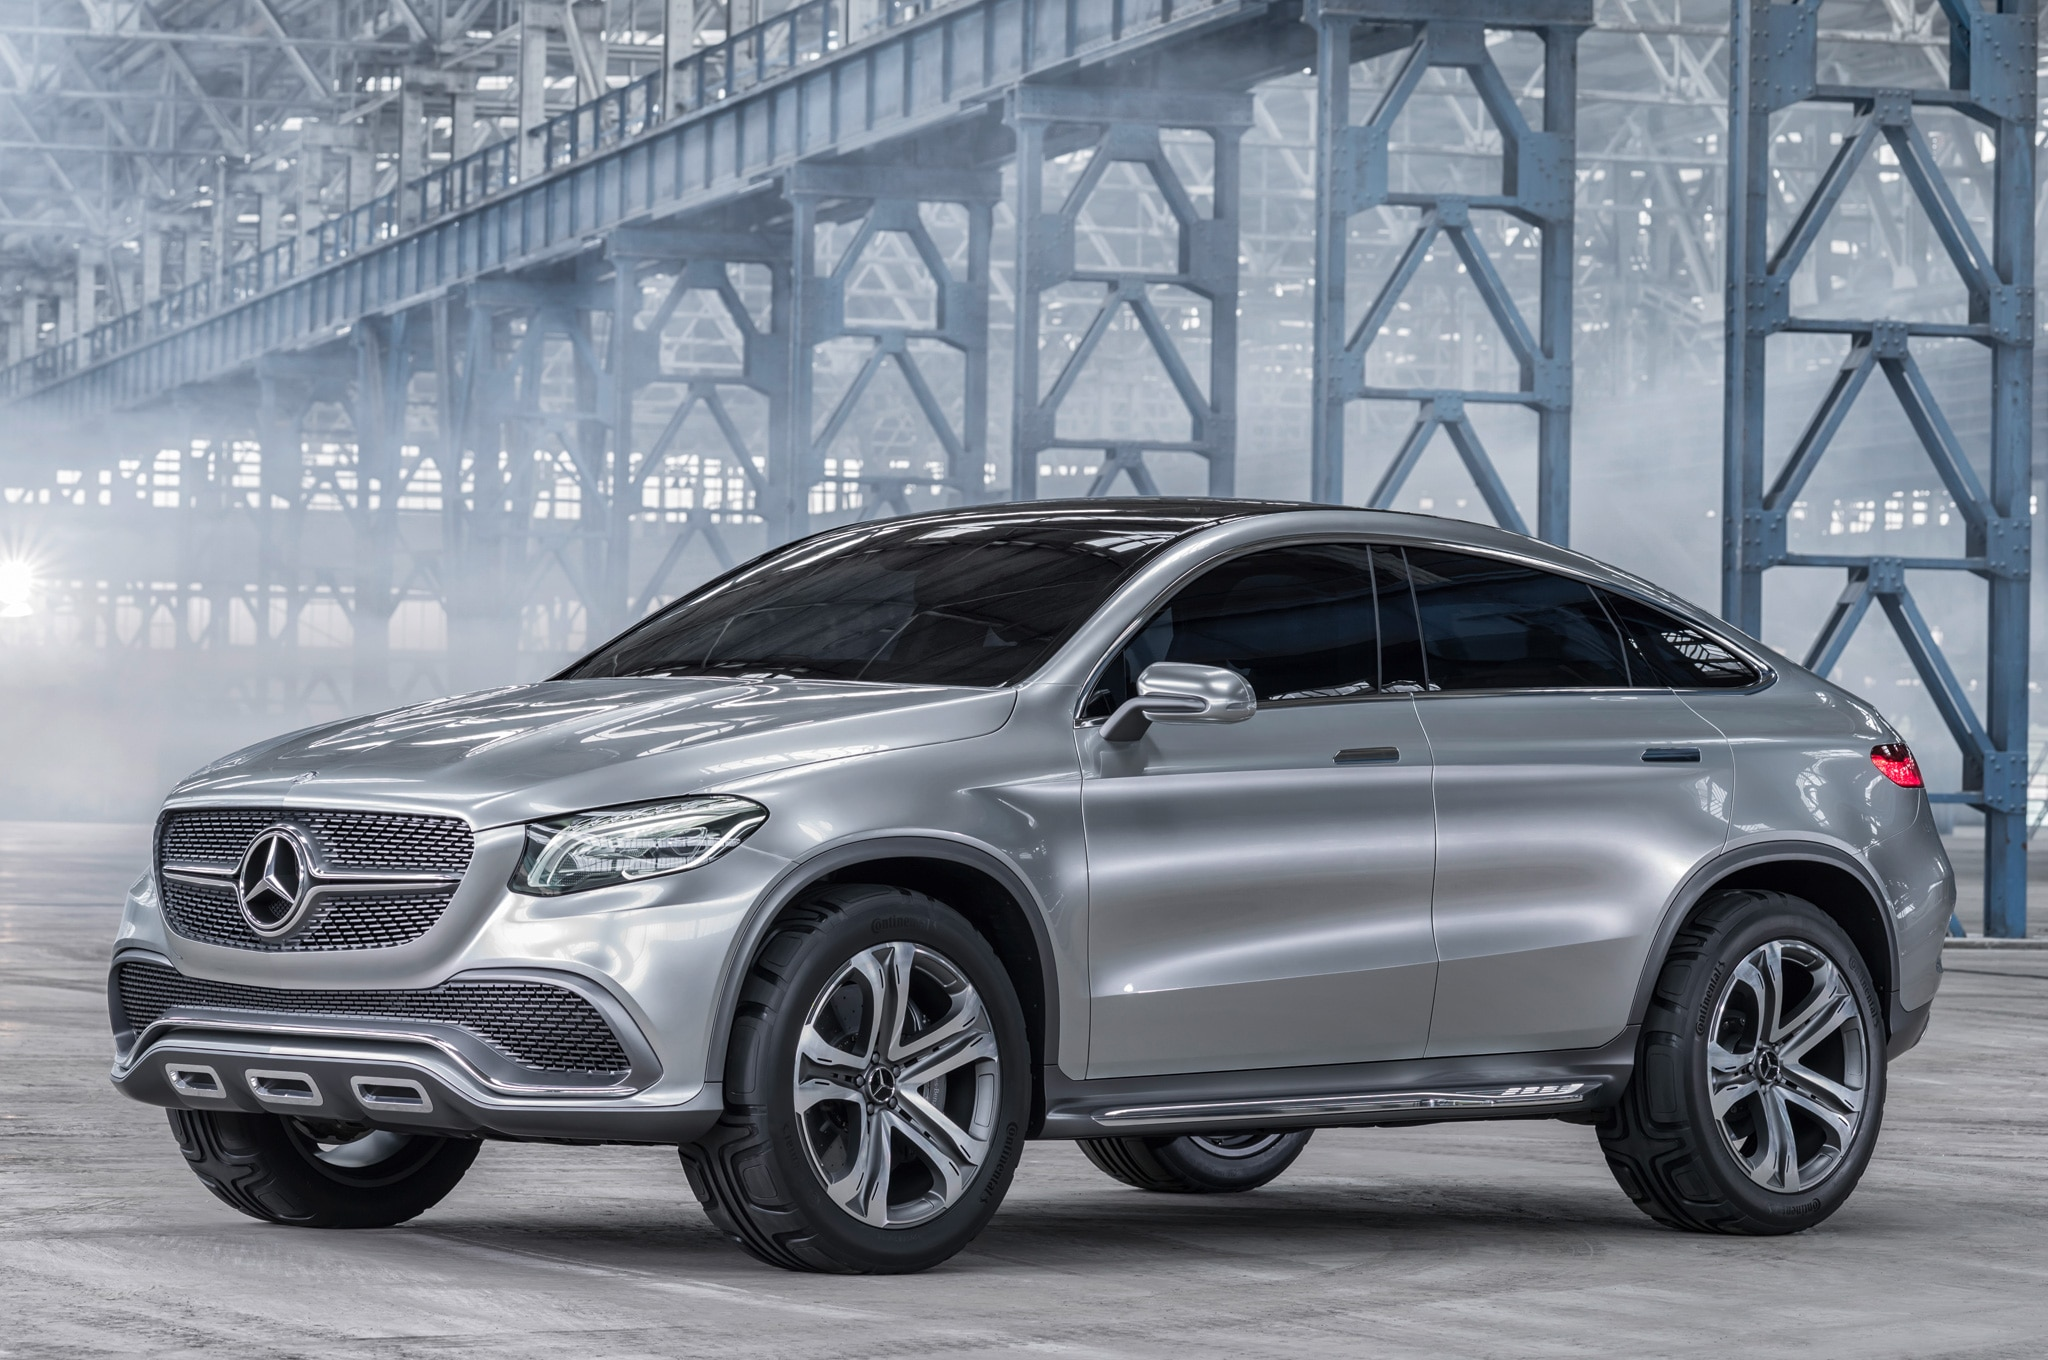 Mercedes Benz Concept Coupe SUV Front Side View Static1